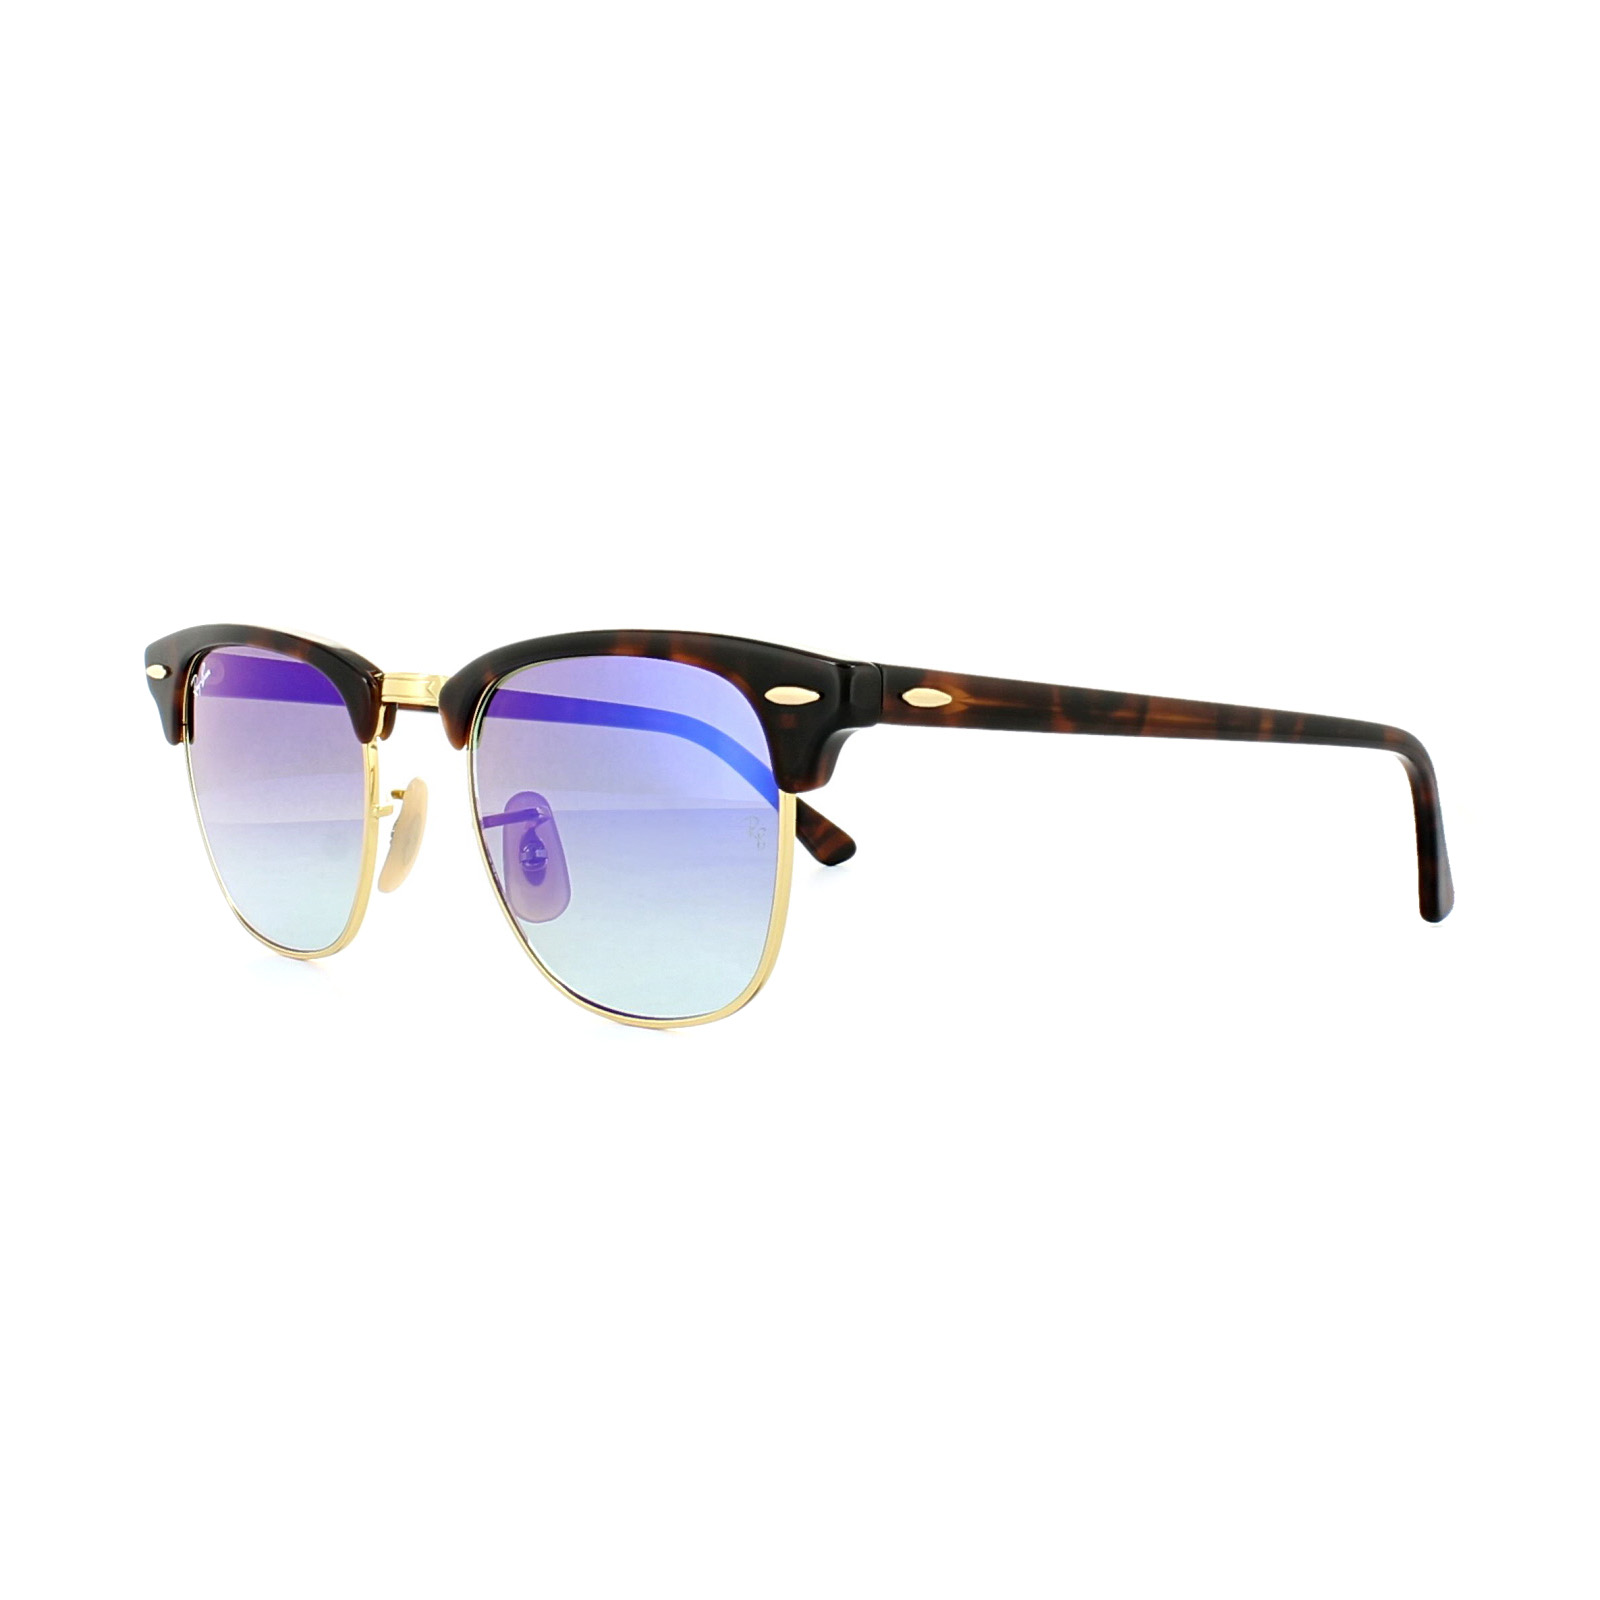 dc054b998c5 Sentinel Ray-Ban Sunglasses Clubmaster 3016 990 7Q Tortoise Blue Gradient  Flash Mirror S